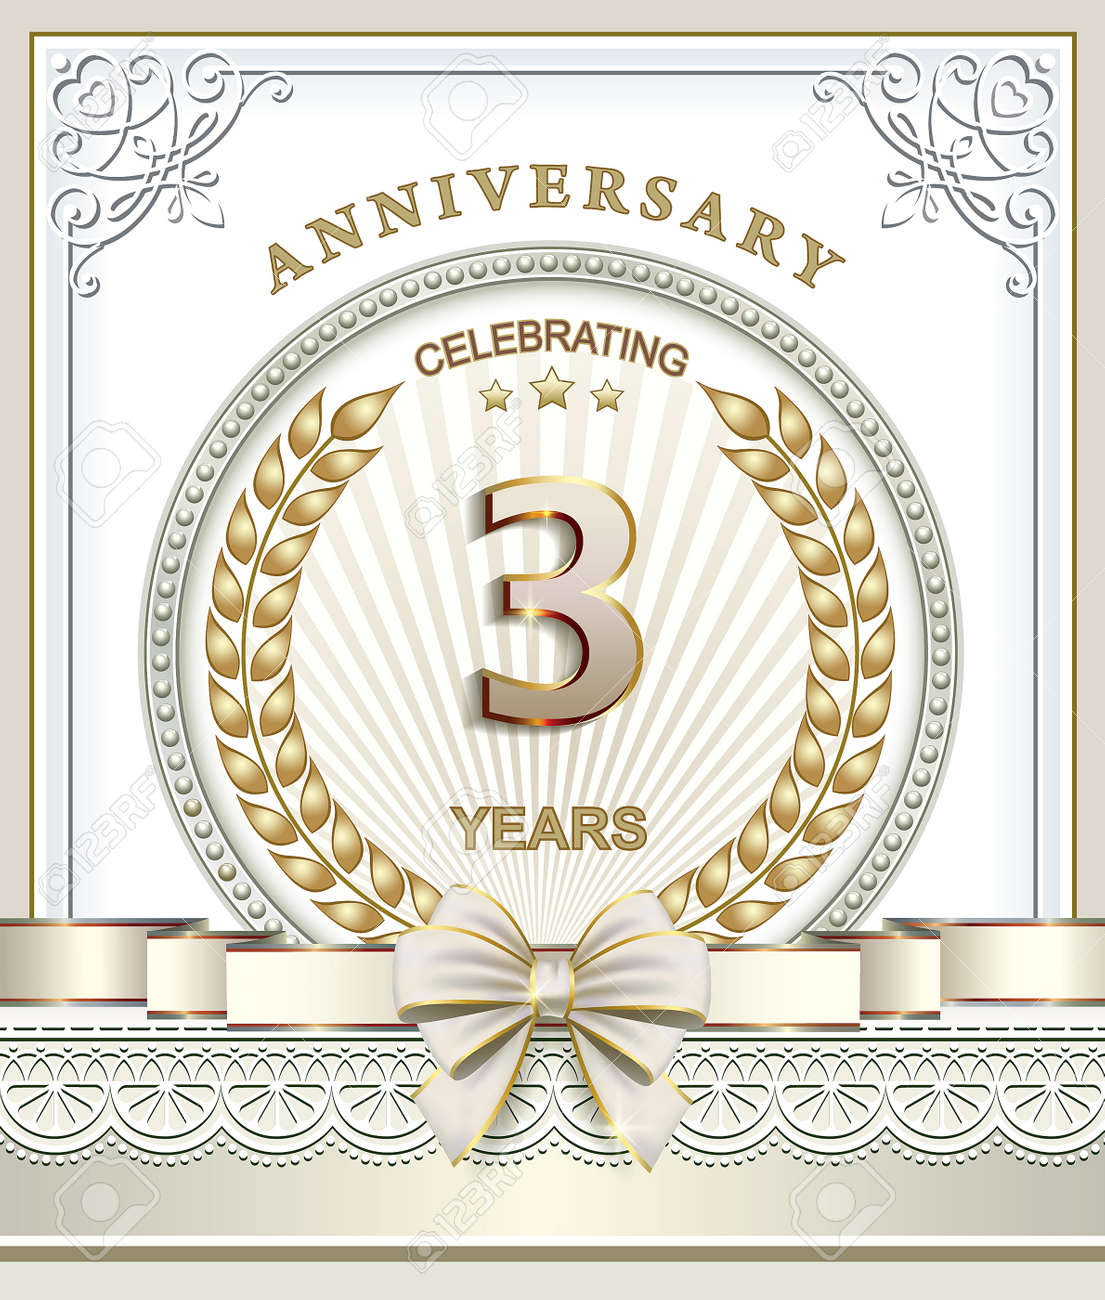 Terzo Anniversario Di Matrimonio.3 Years Anniversary In Gold Laurel Wreath Royalty Free Cliparts